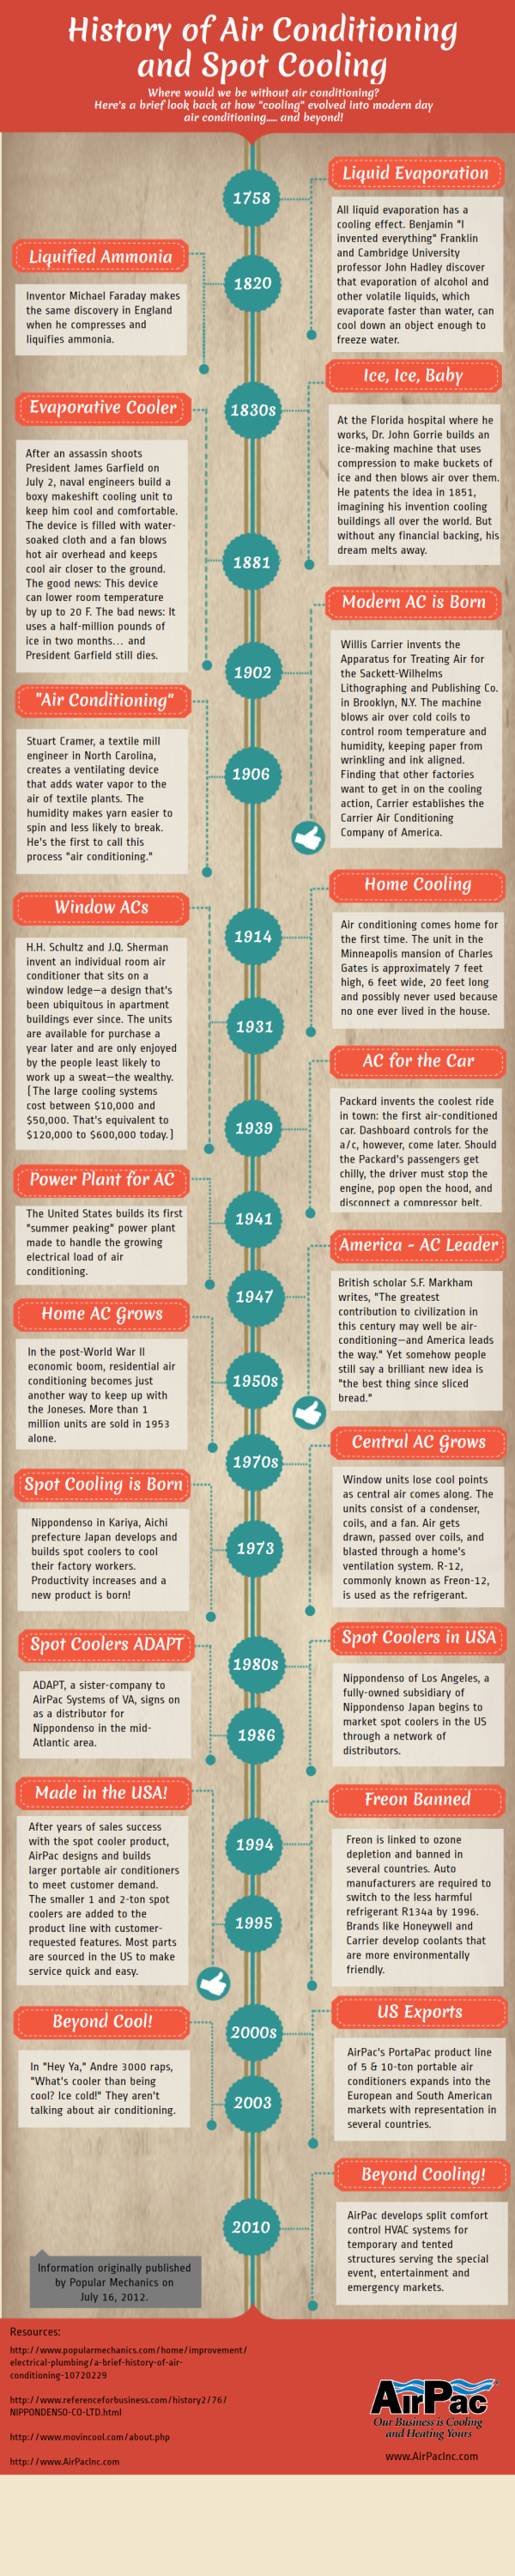 History-of-air-conditioning-and-spot-cooling